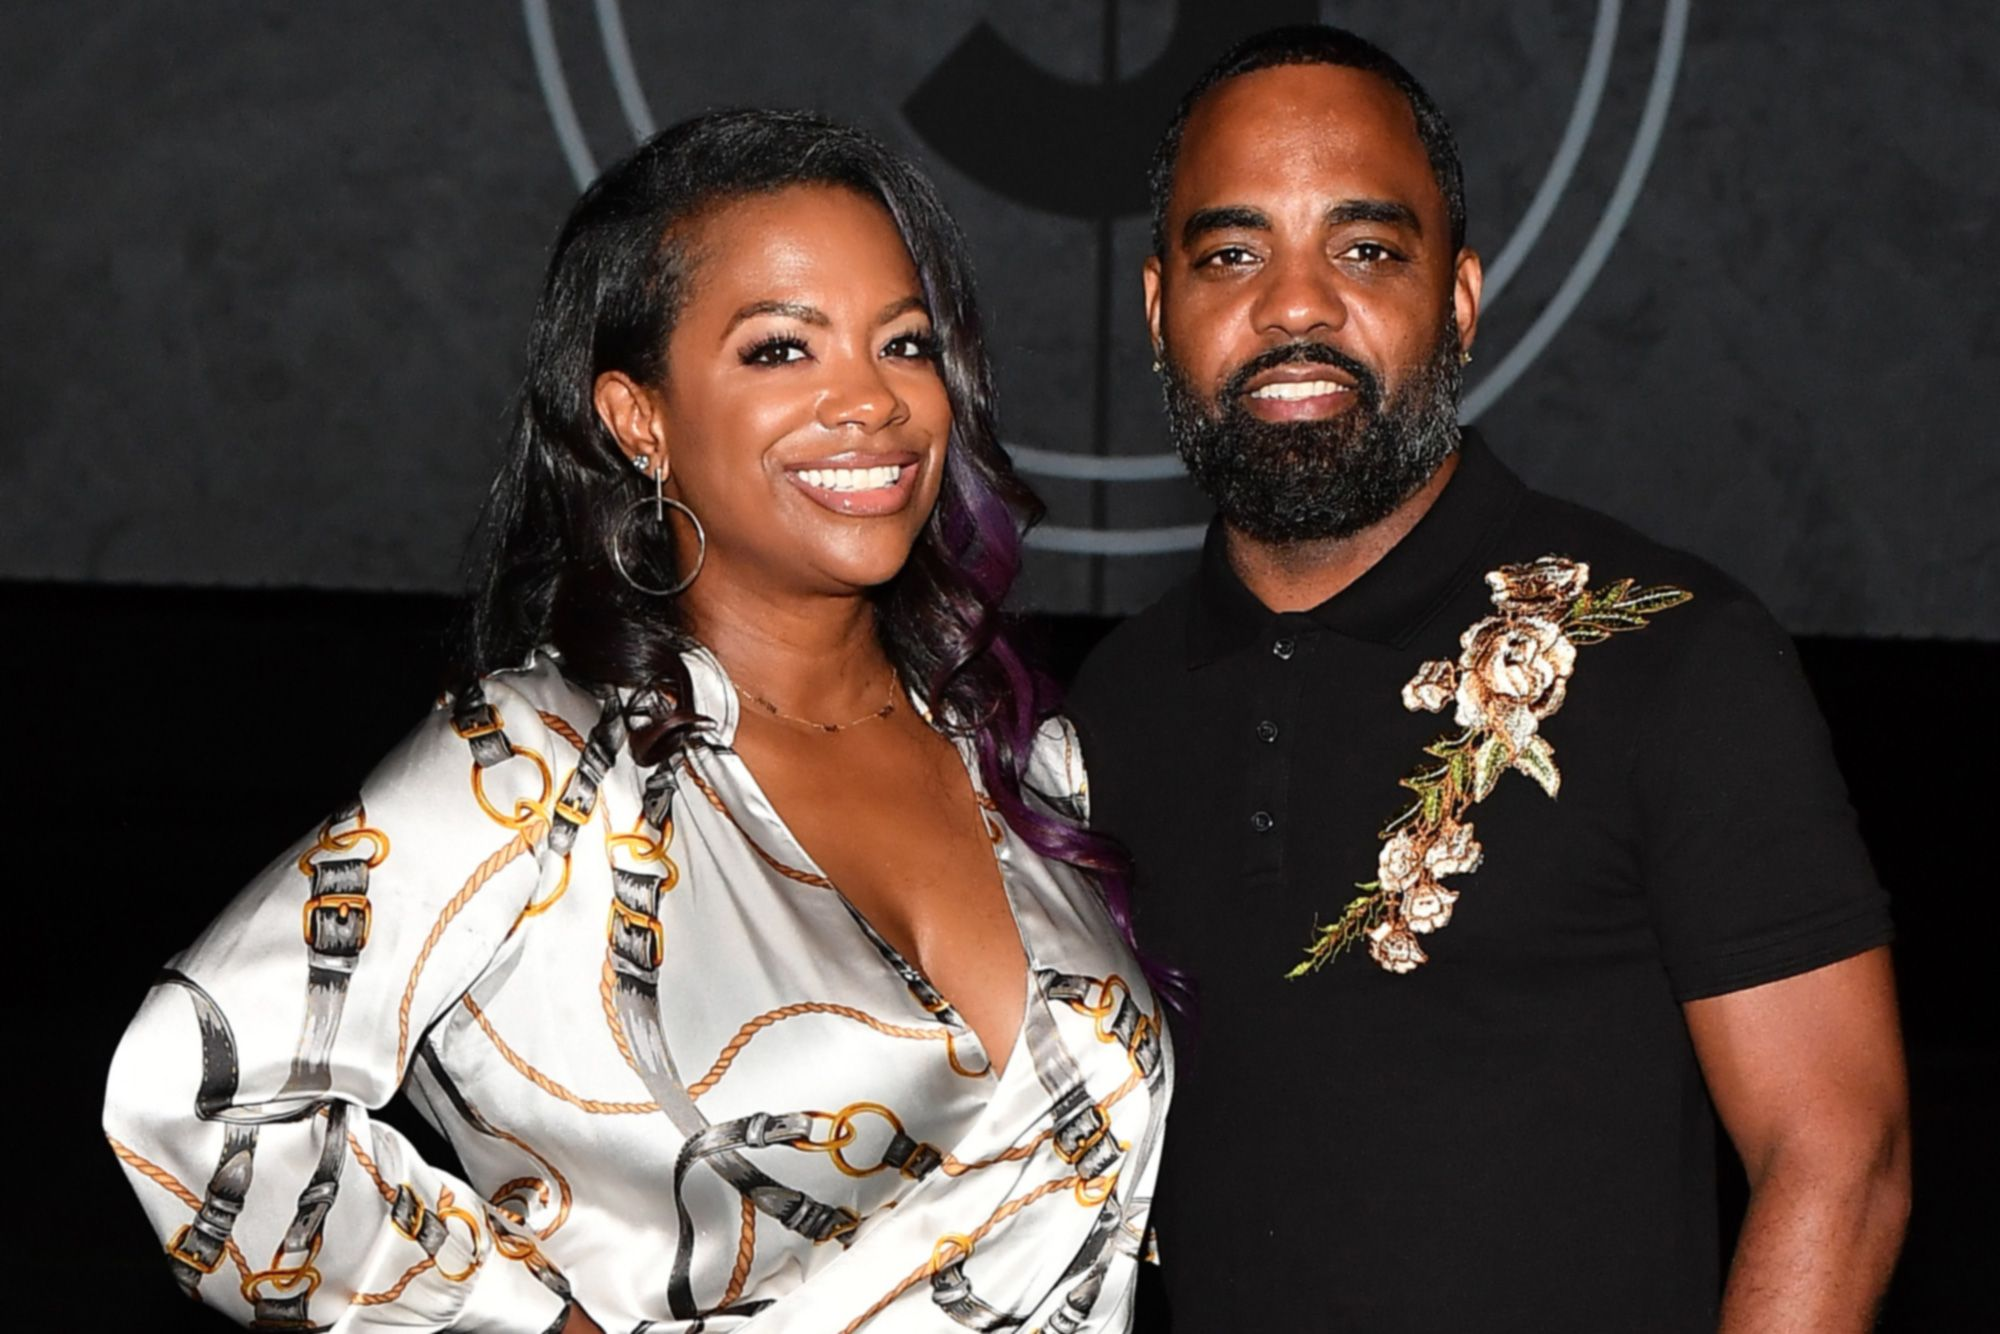 Kandi Burruss Celebrates Love Together With Todd Tucker - Check Out Their Photo